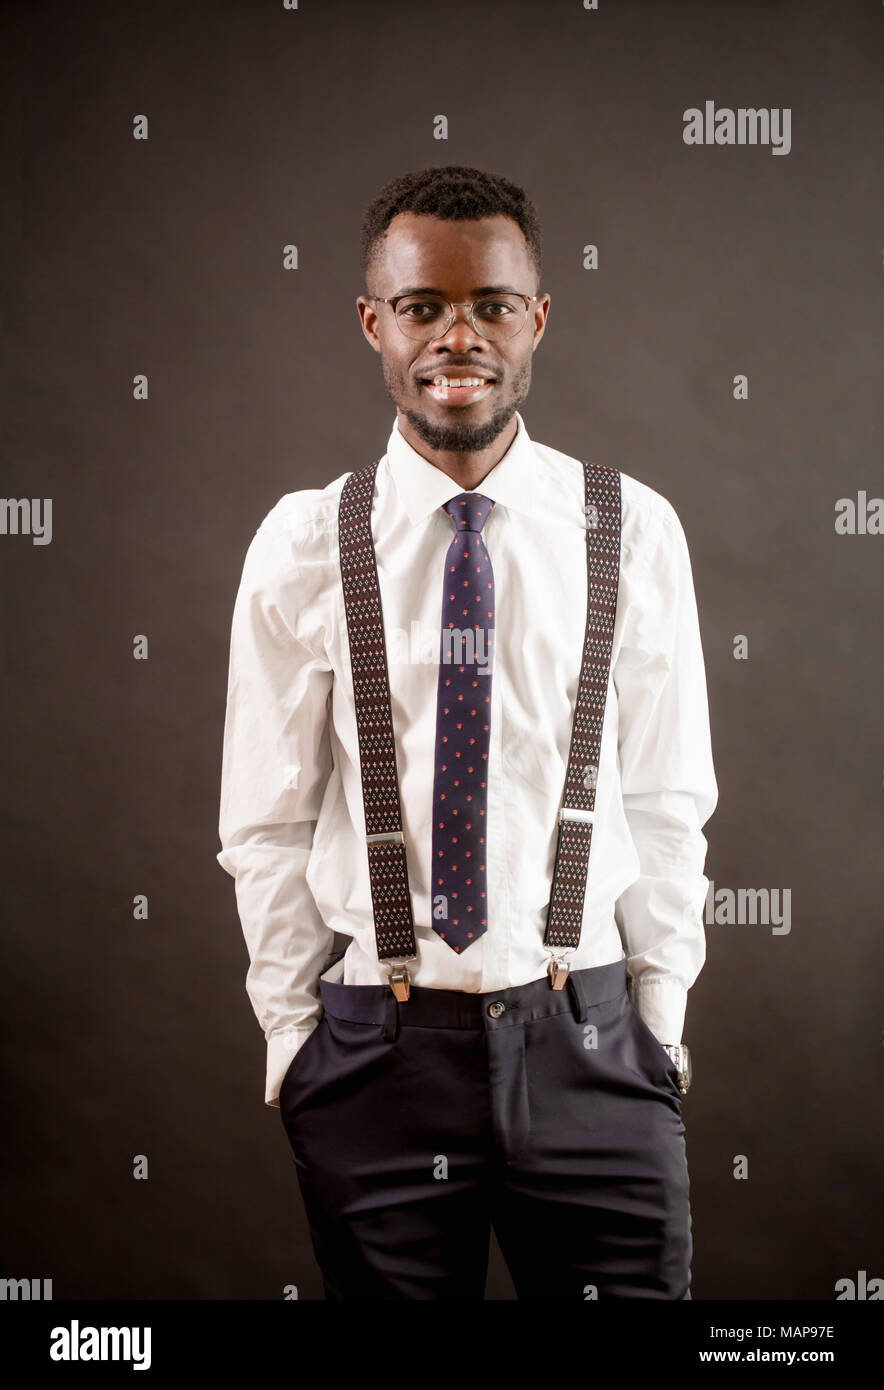 trendy African man with glasses, suspenders, white shirt, trousers and tie - Stock Image